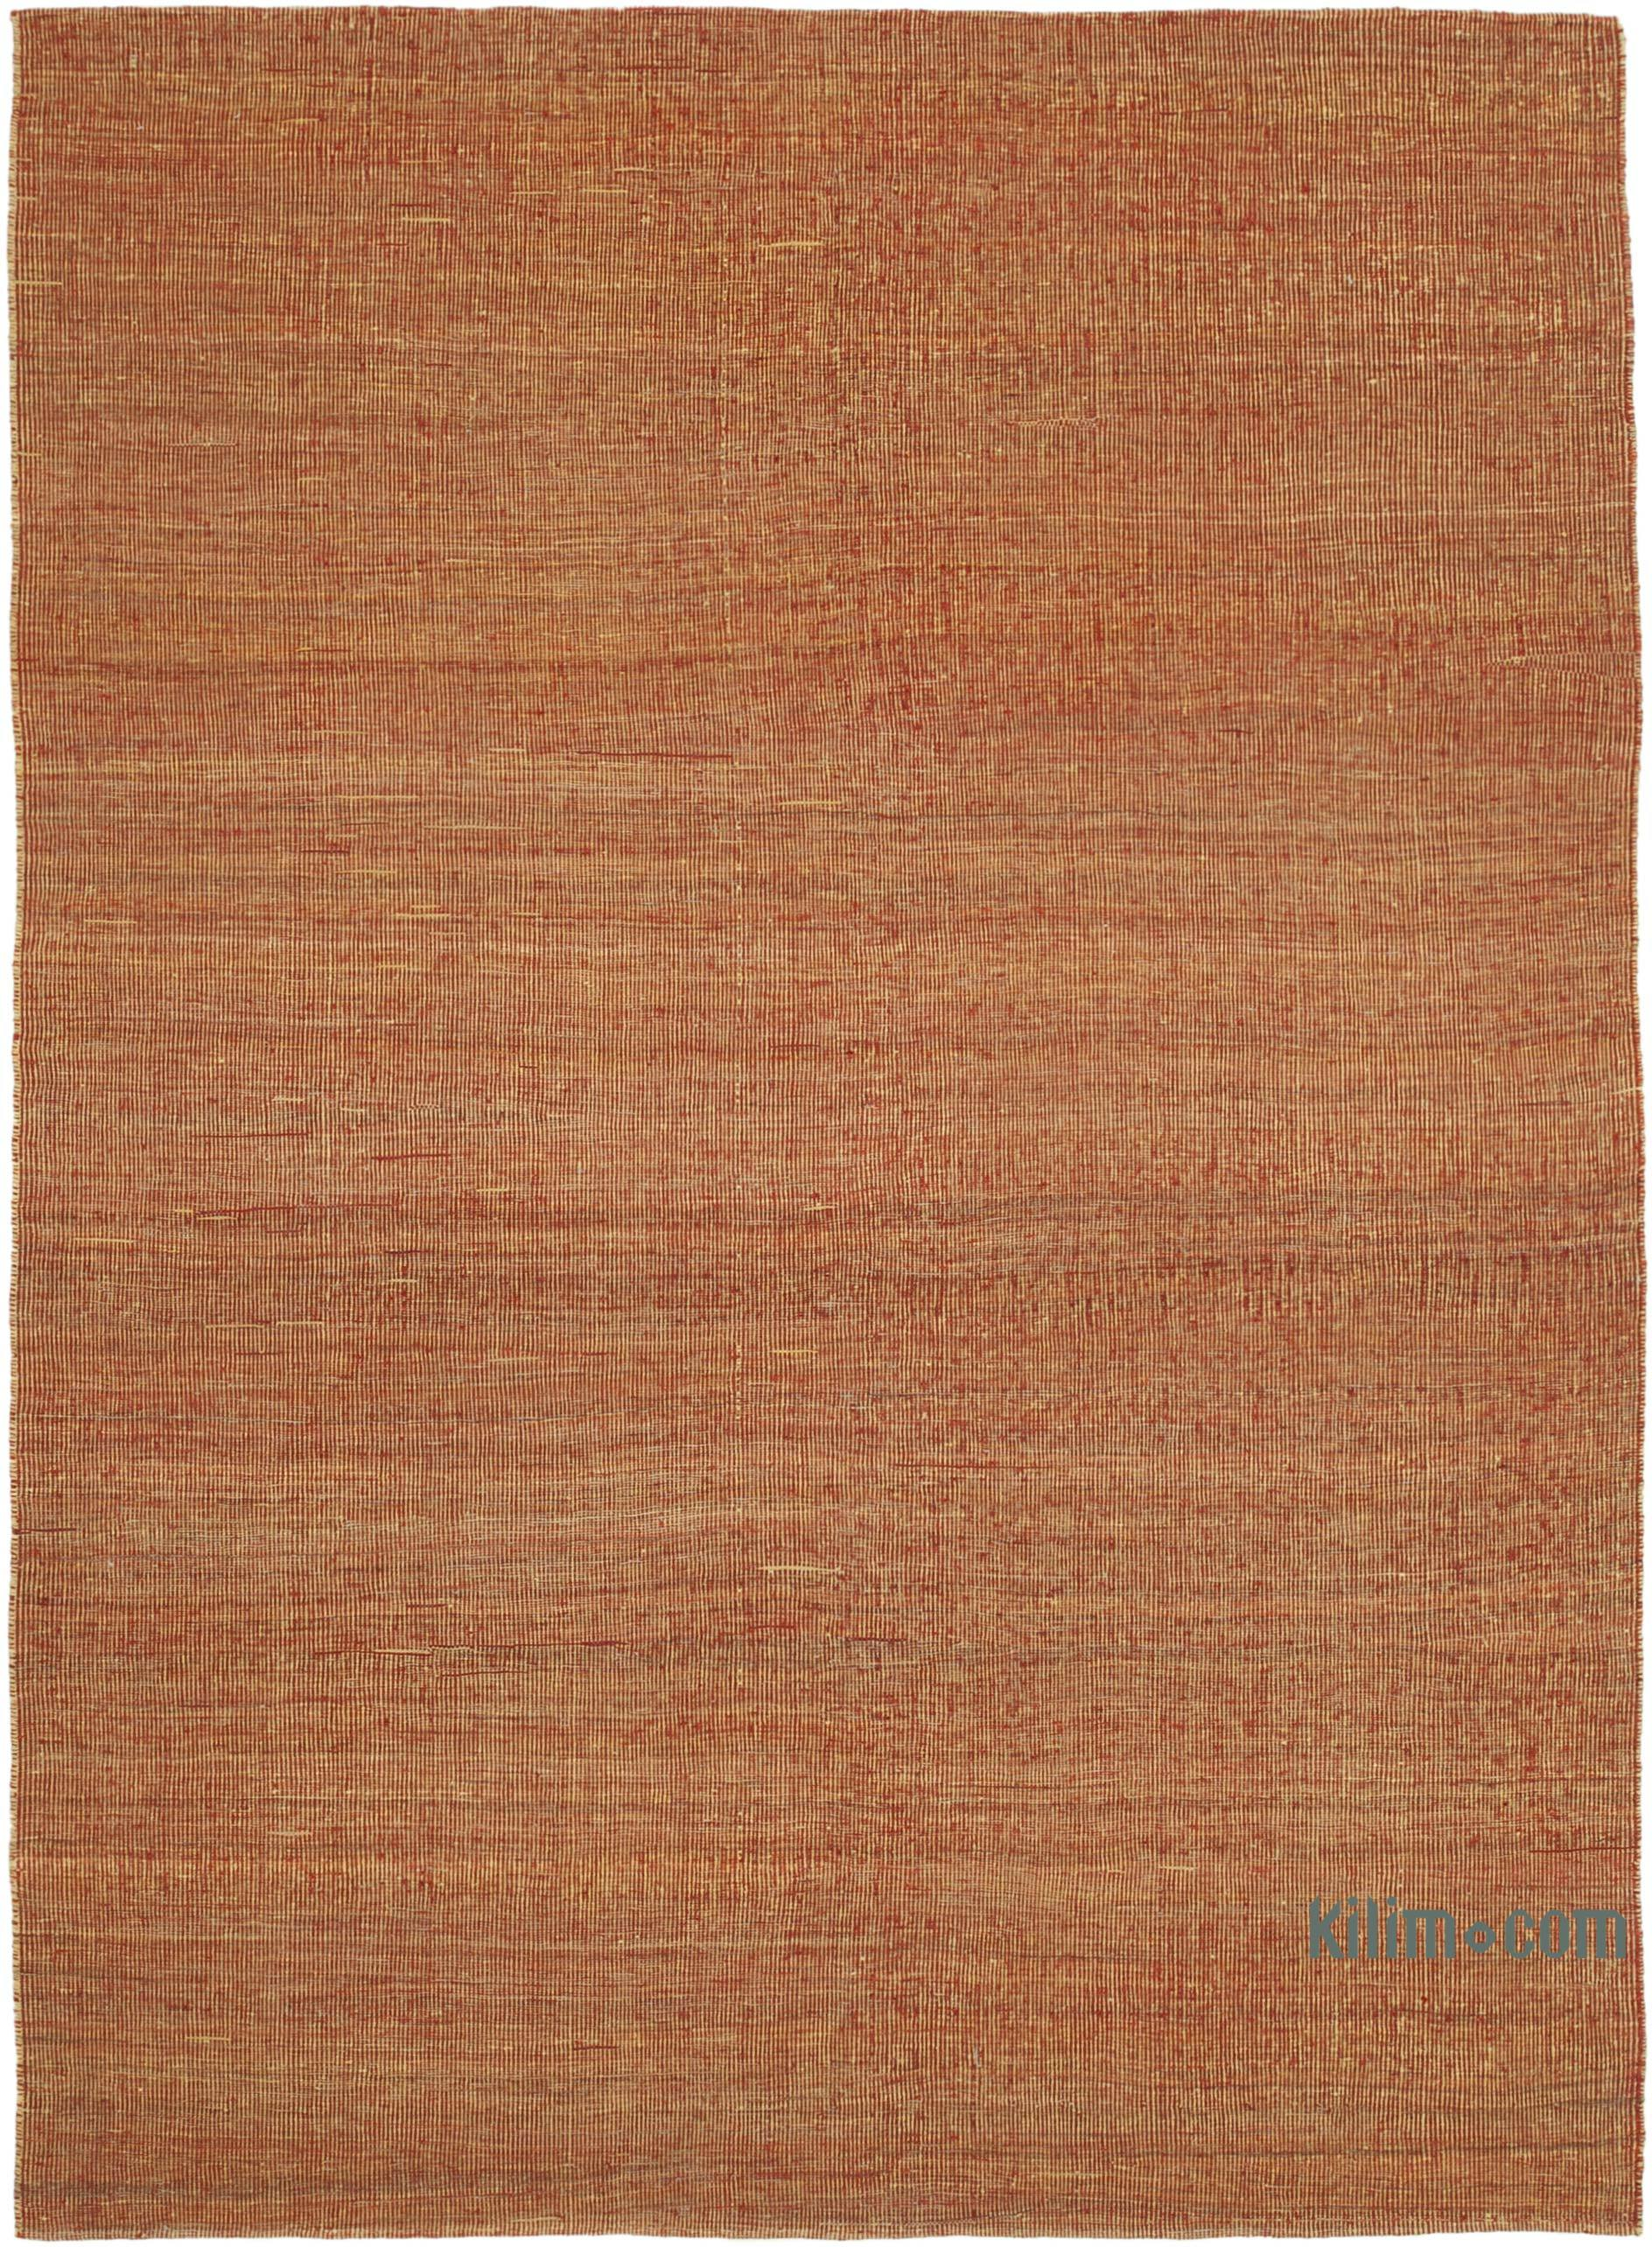 Red Yellow New Contemporary Kilim Rug Z Collection 6 4 X 9 76 In X 108 In